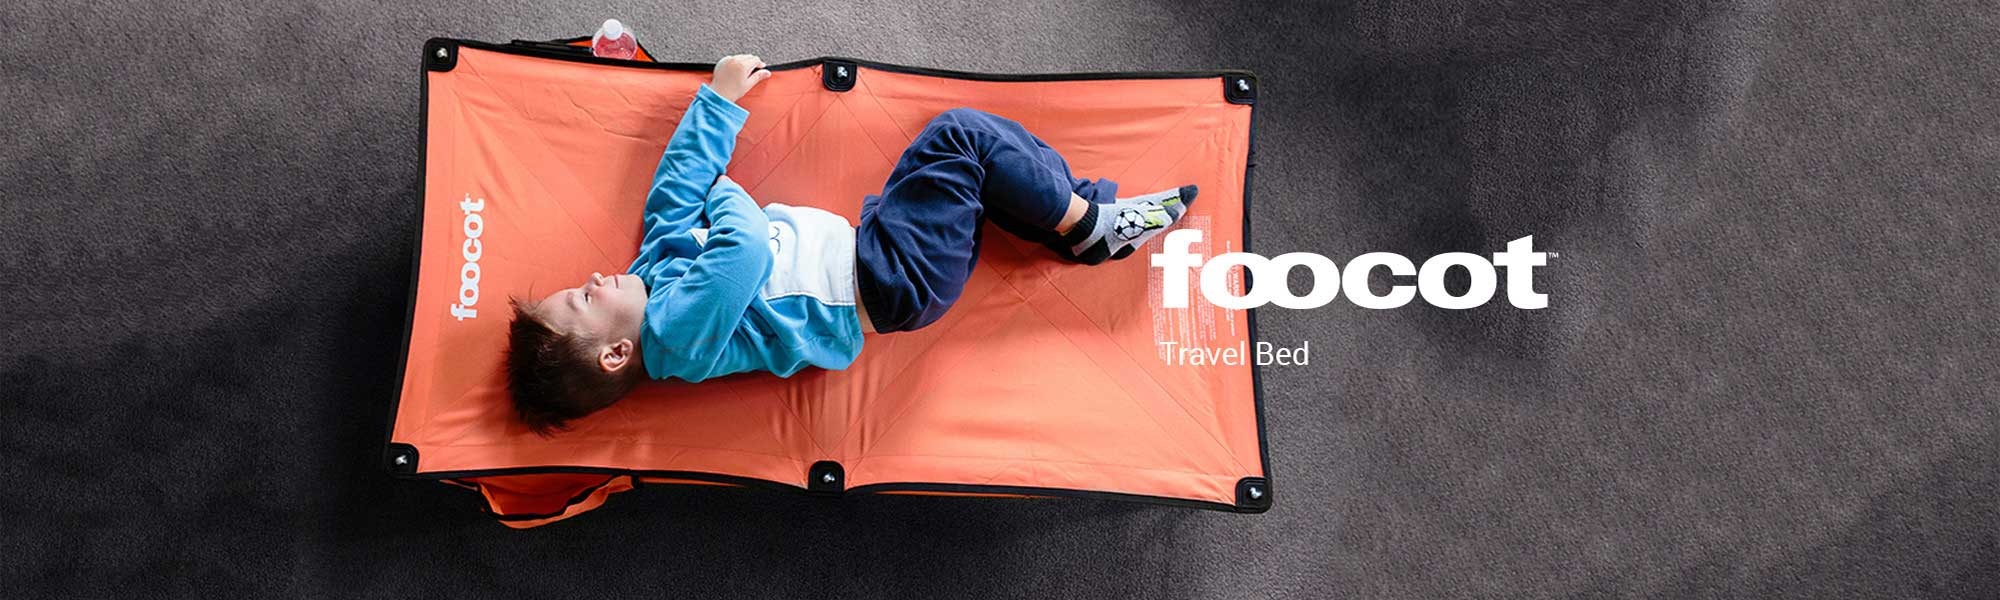 Foocot Travel Cot